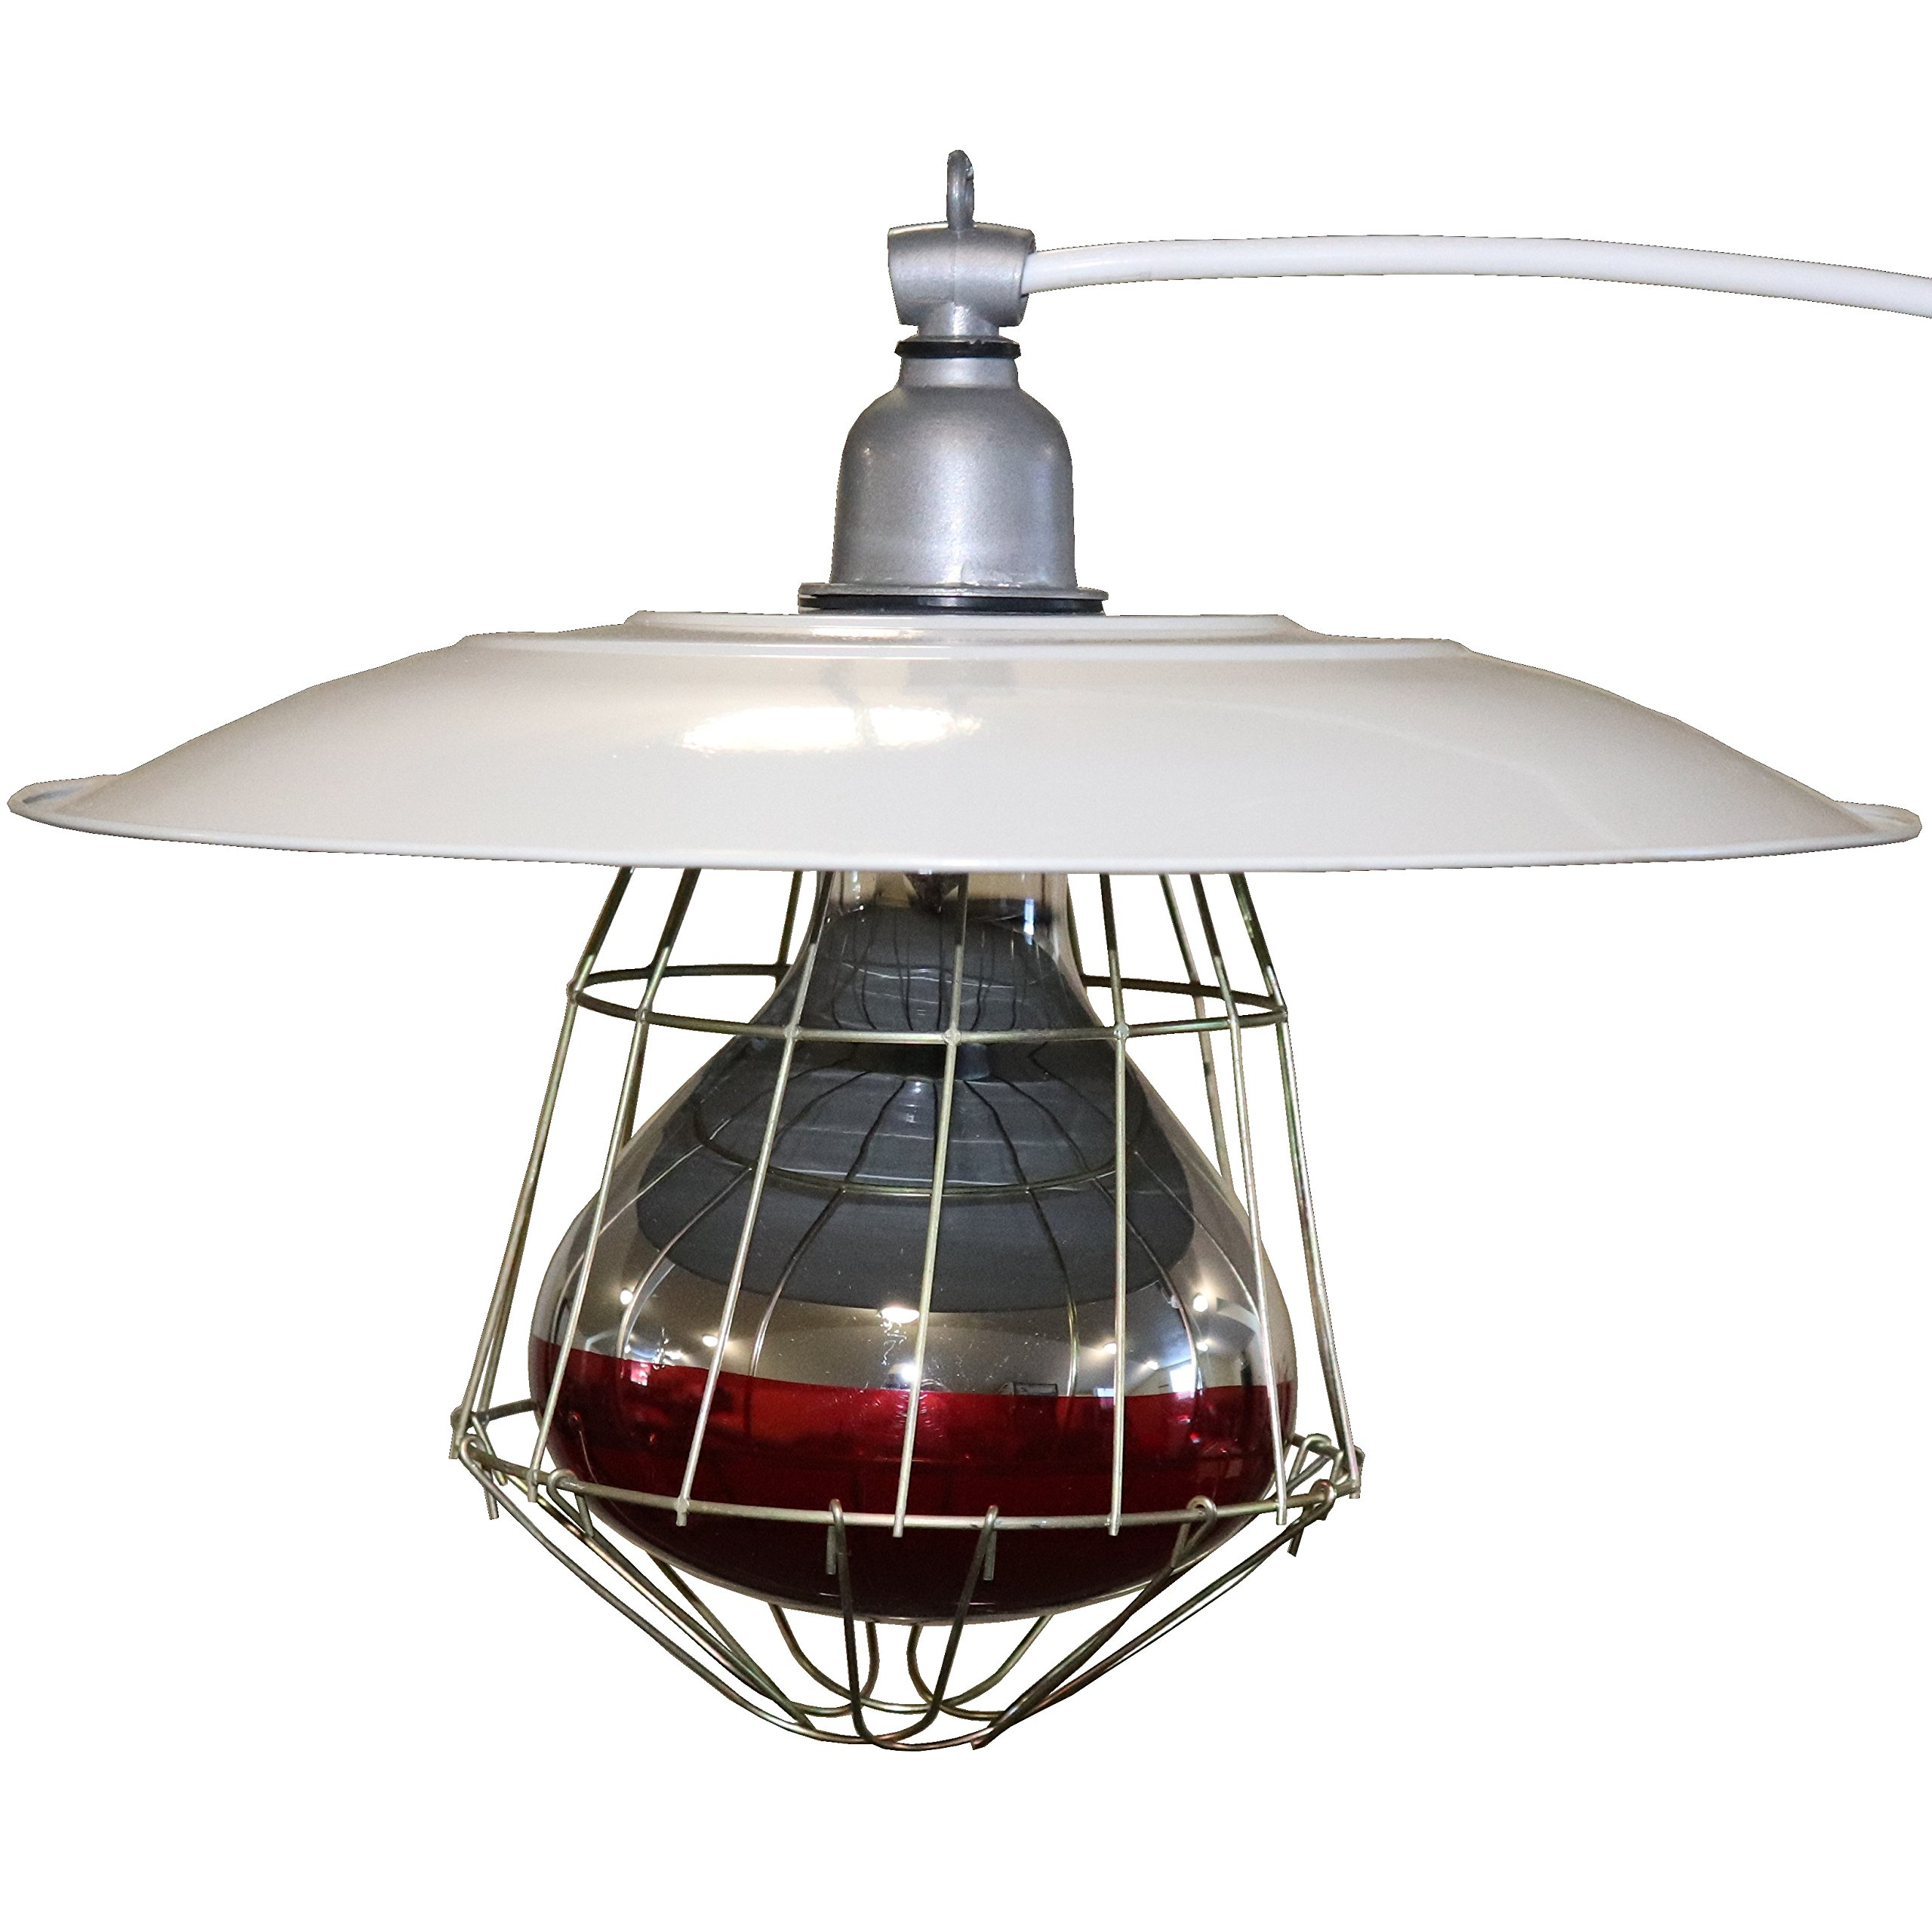 INDUSTRIAL 12'' BROODER LAMP FIXTURE CHICKEN FOR COOP HOUSE CHICK WARMER HEAT LIGHT